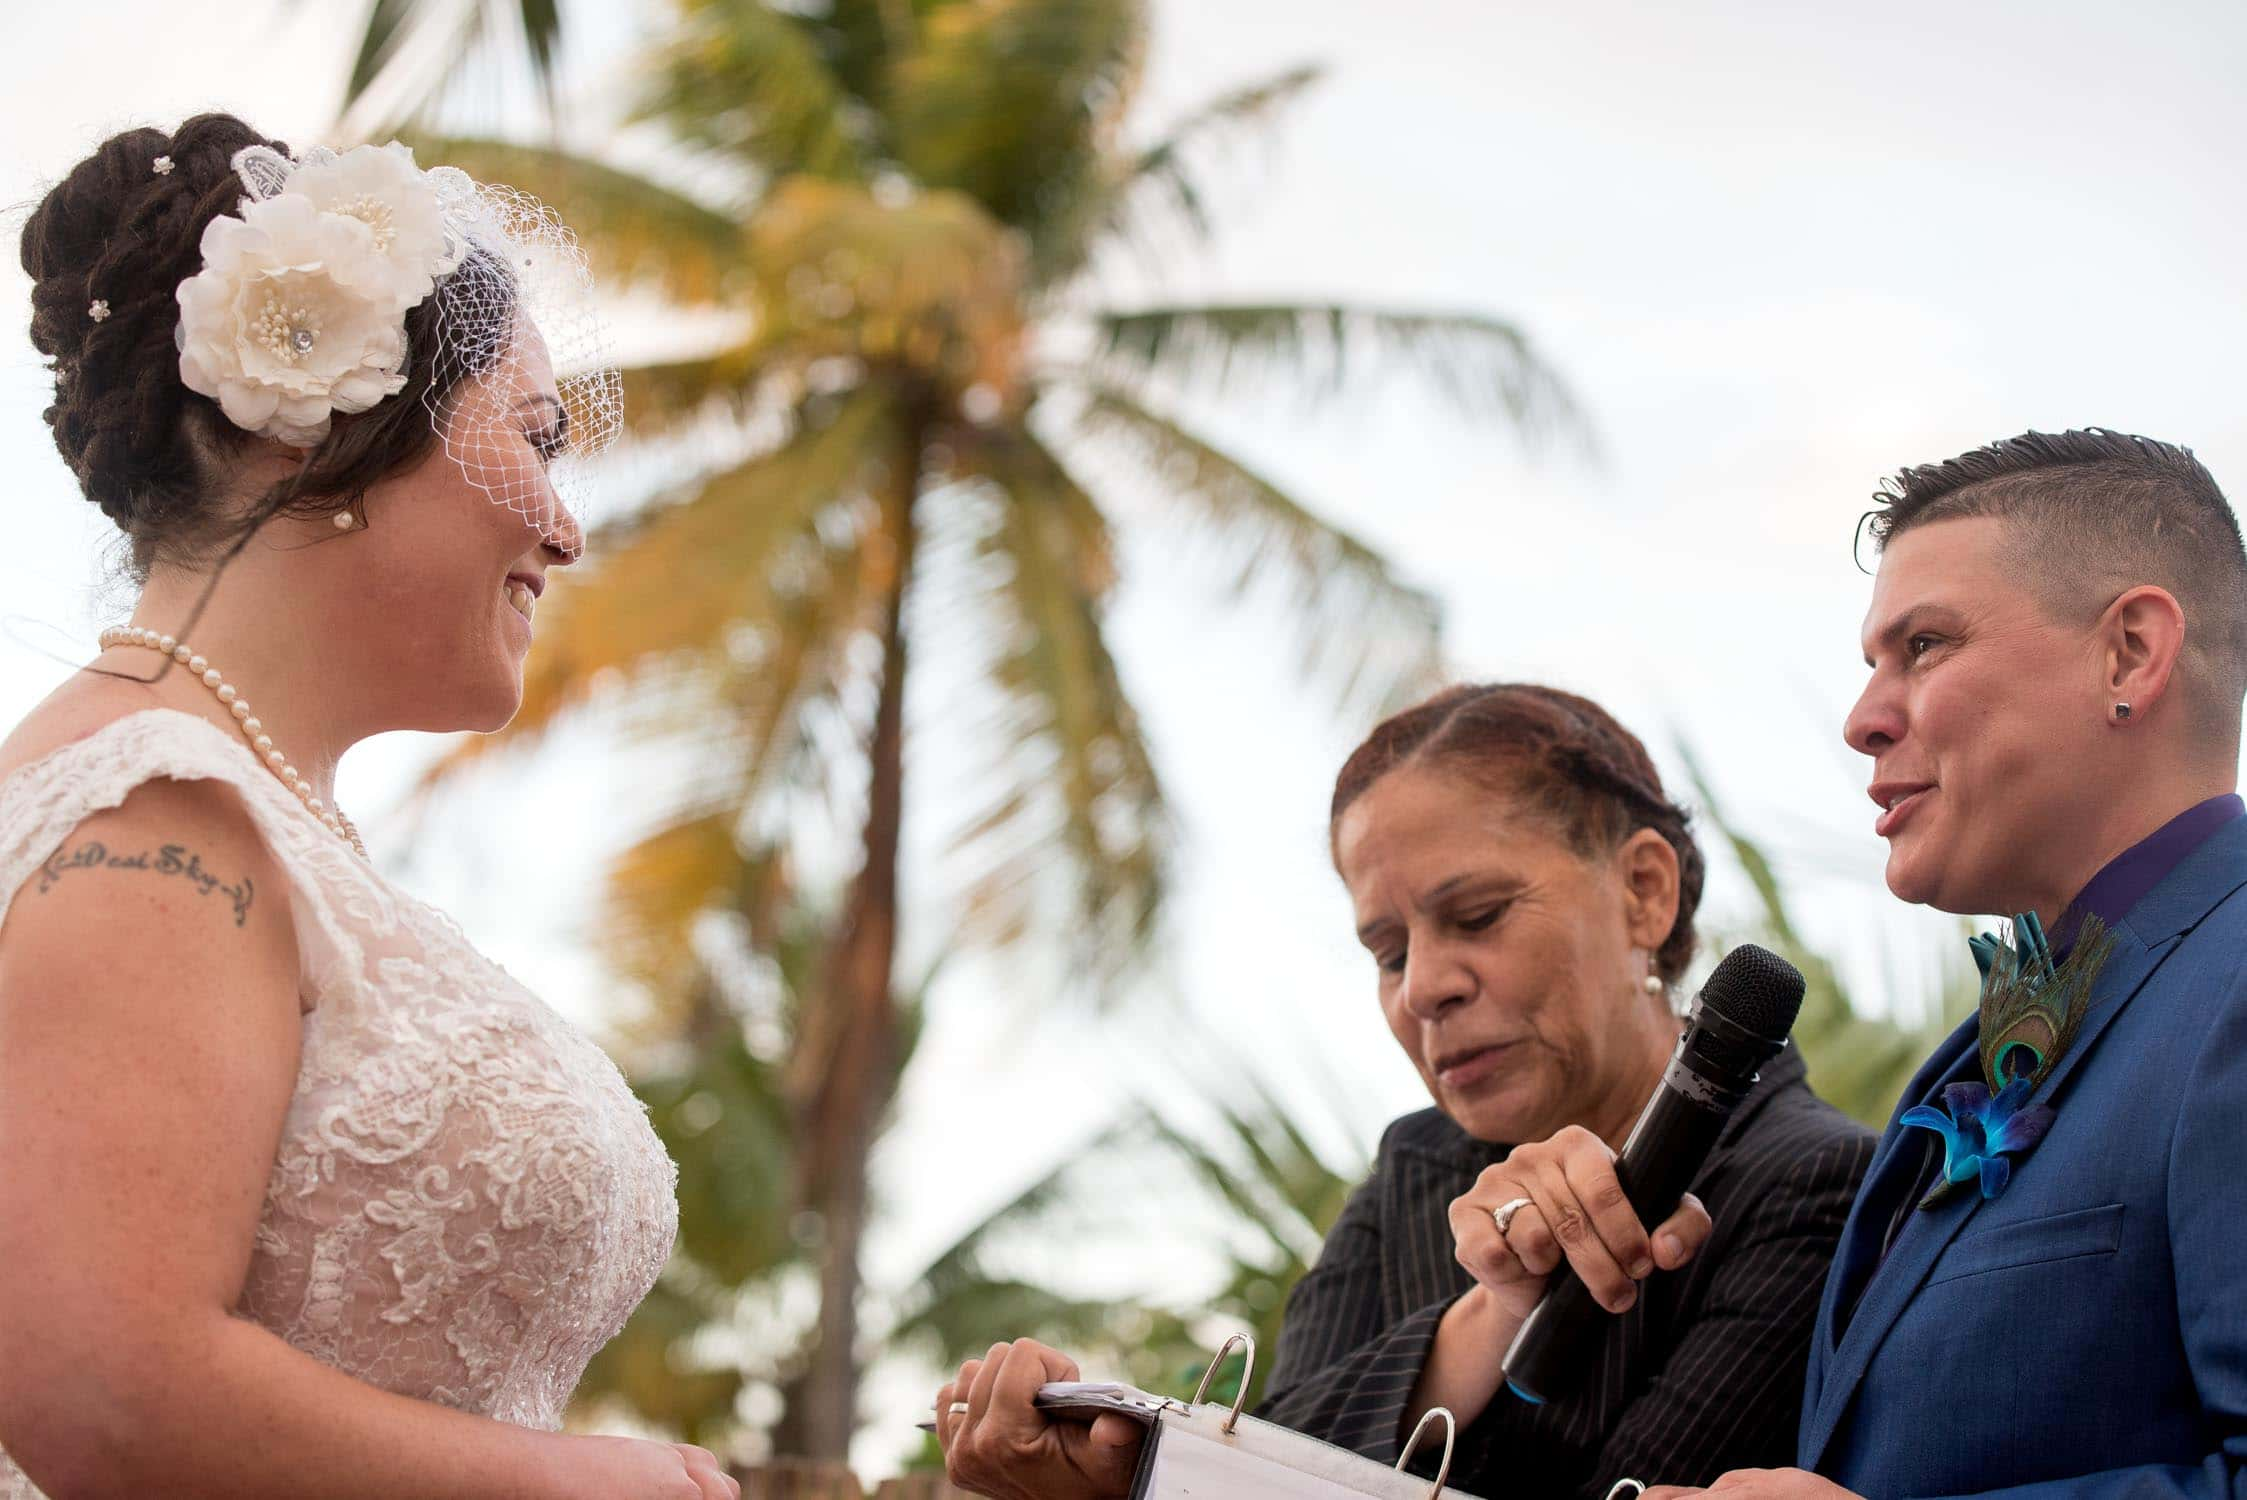 Exchanging of vows during wedding ceremony